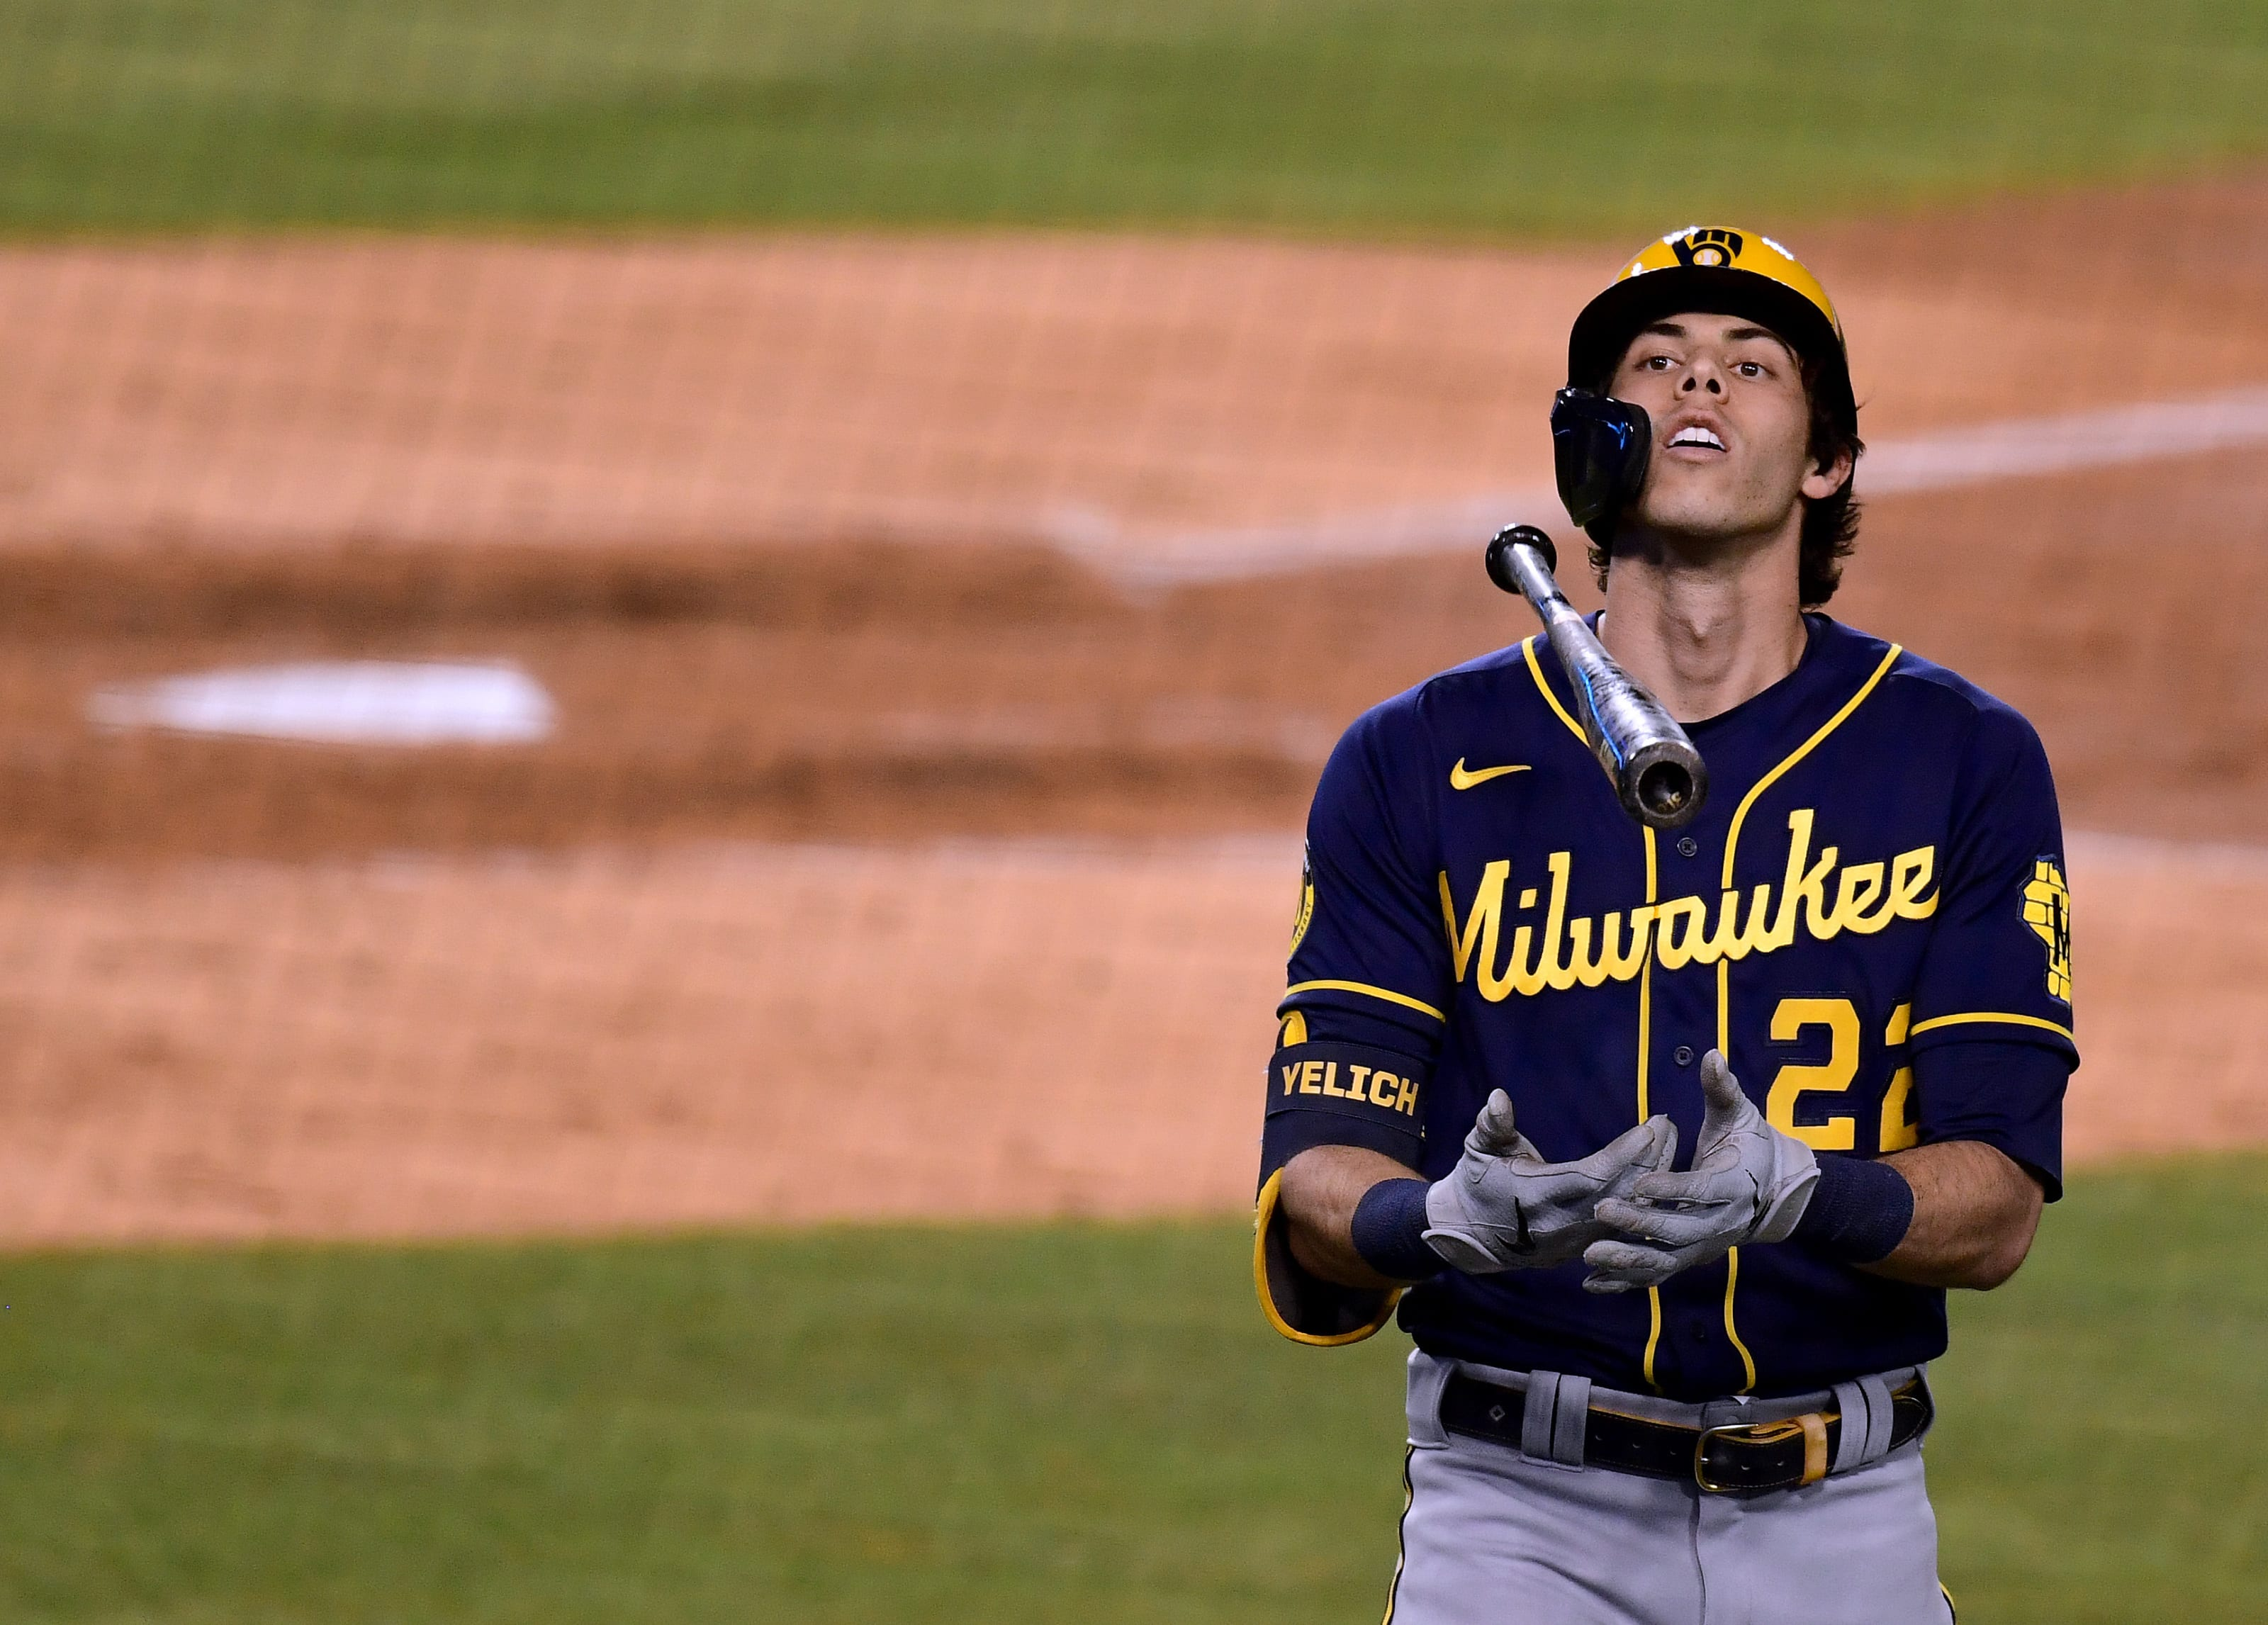 Milwaukee Brewers: Why Christian Yelich's 2020 season was not a fluke